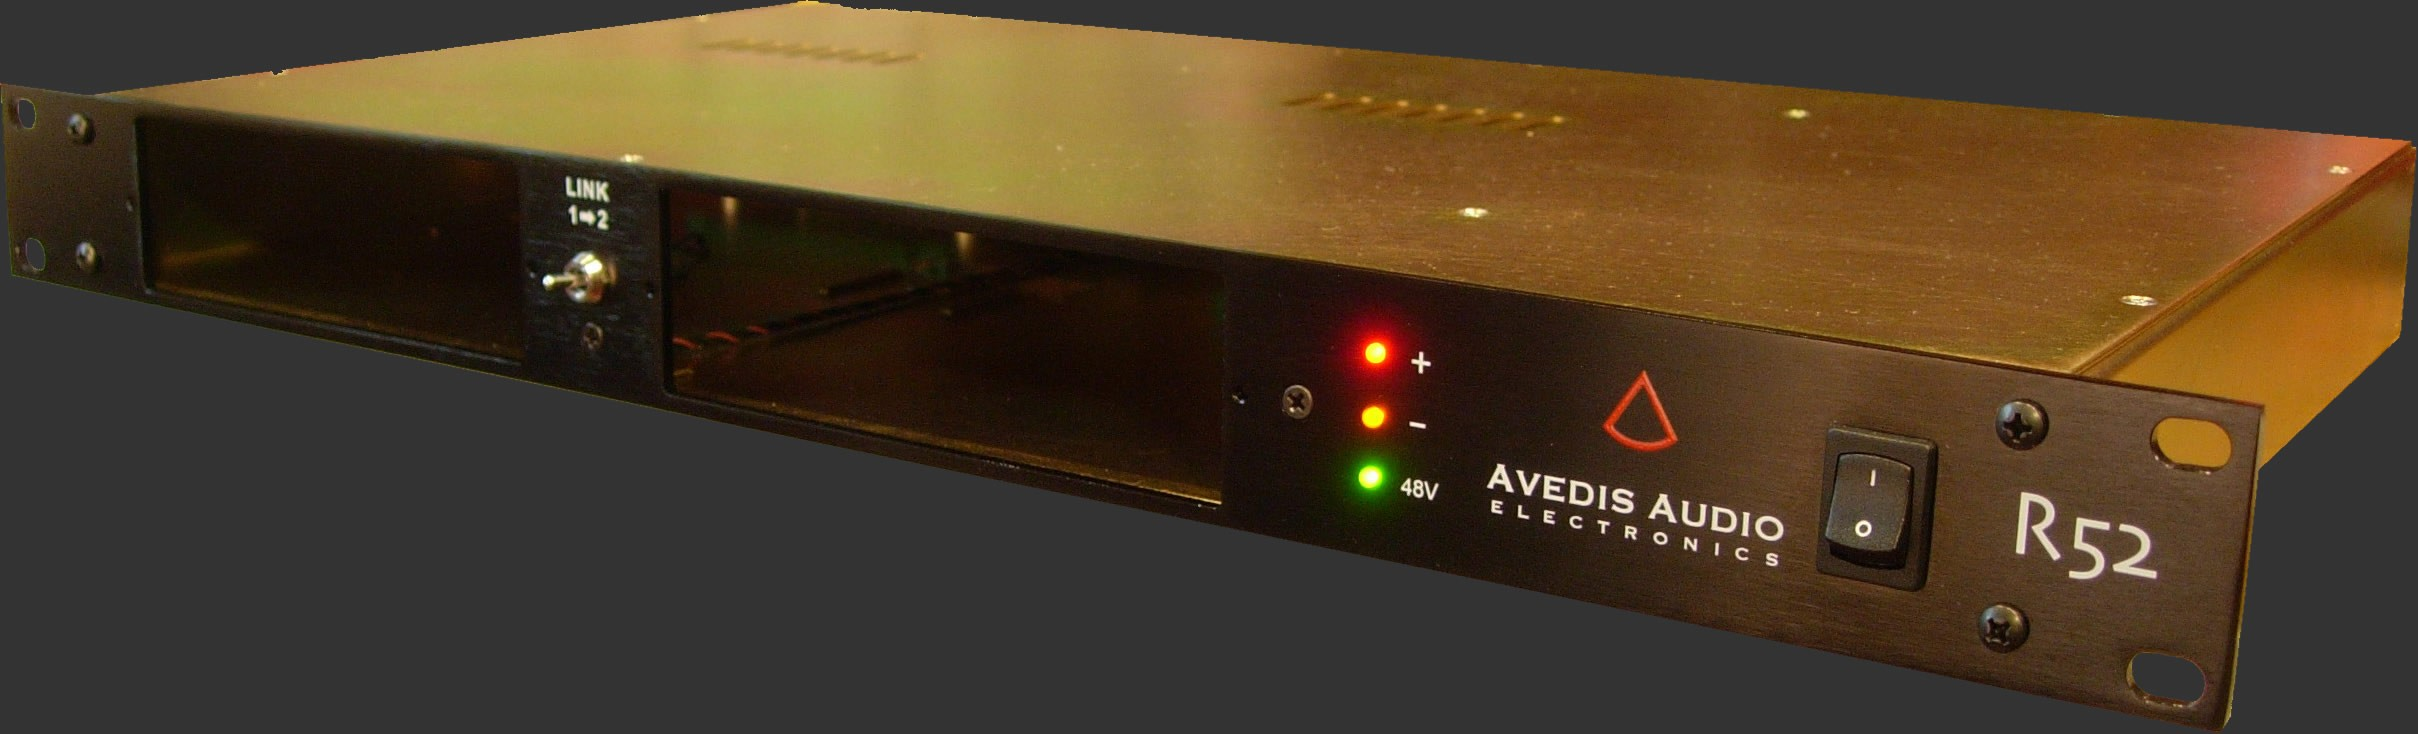 Avedis Audio R52